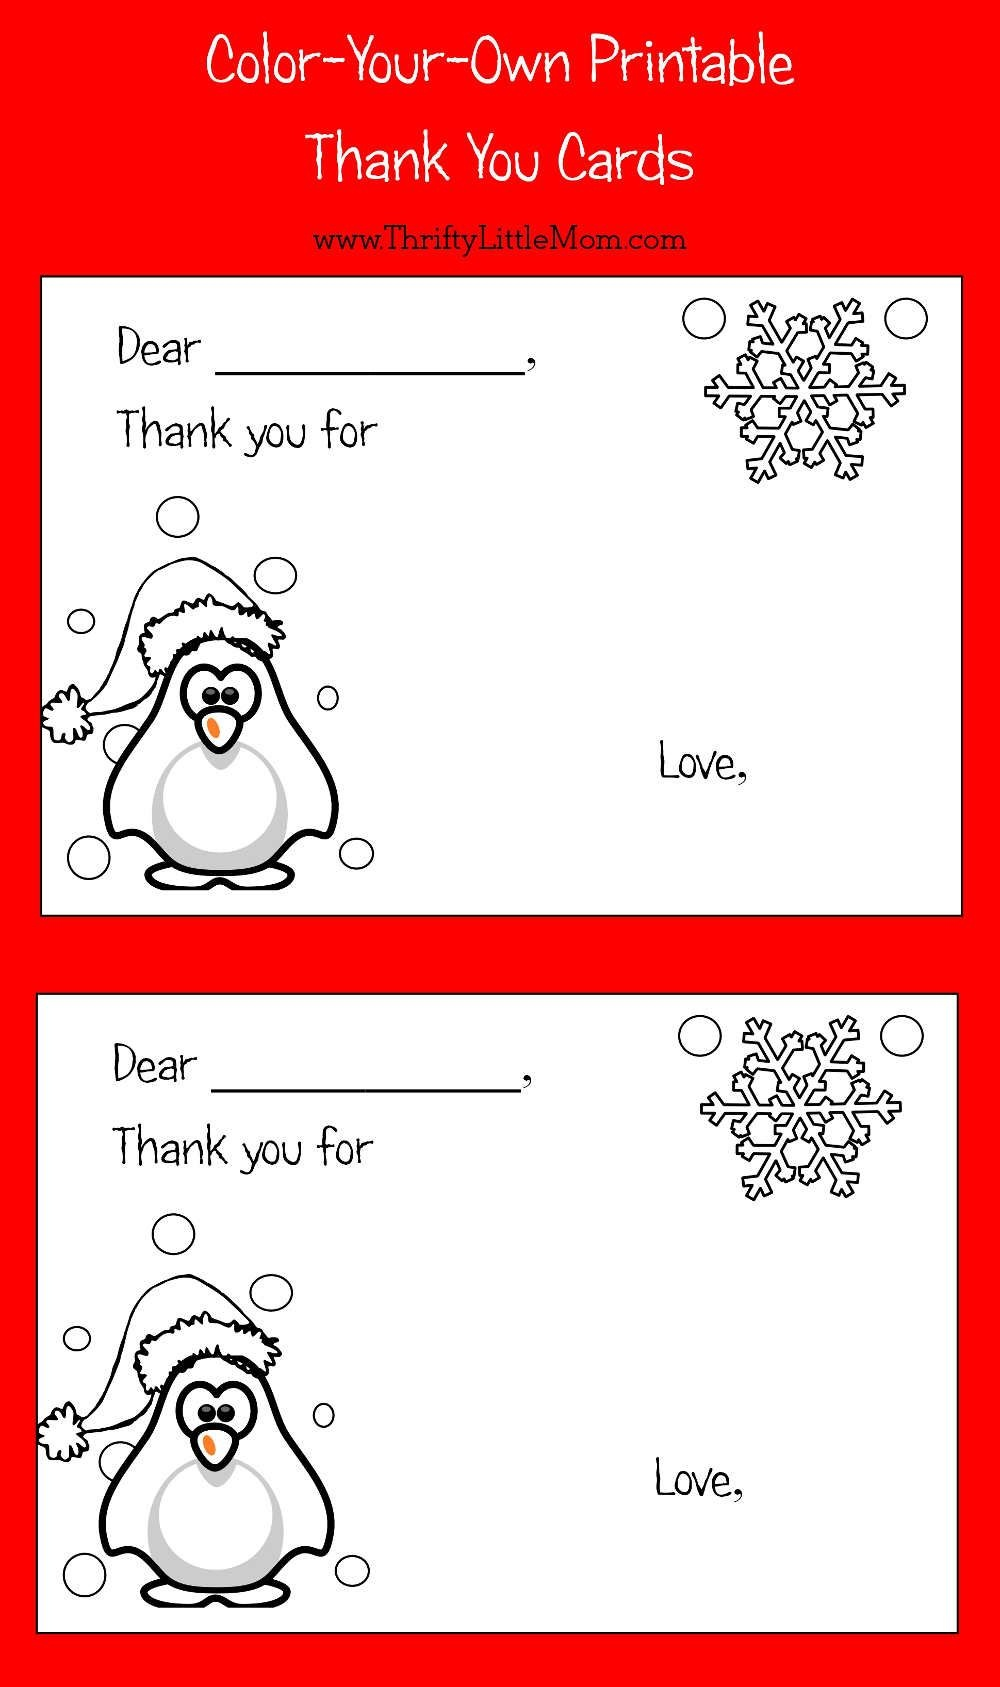 Color-Your-Own Printable Thank You Cards For Kids | Thrifty Thursday - Free Printable Color Your Own Cards